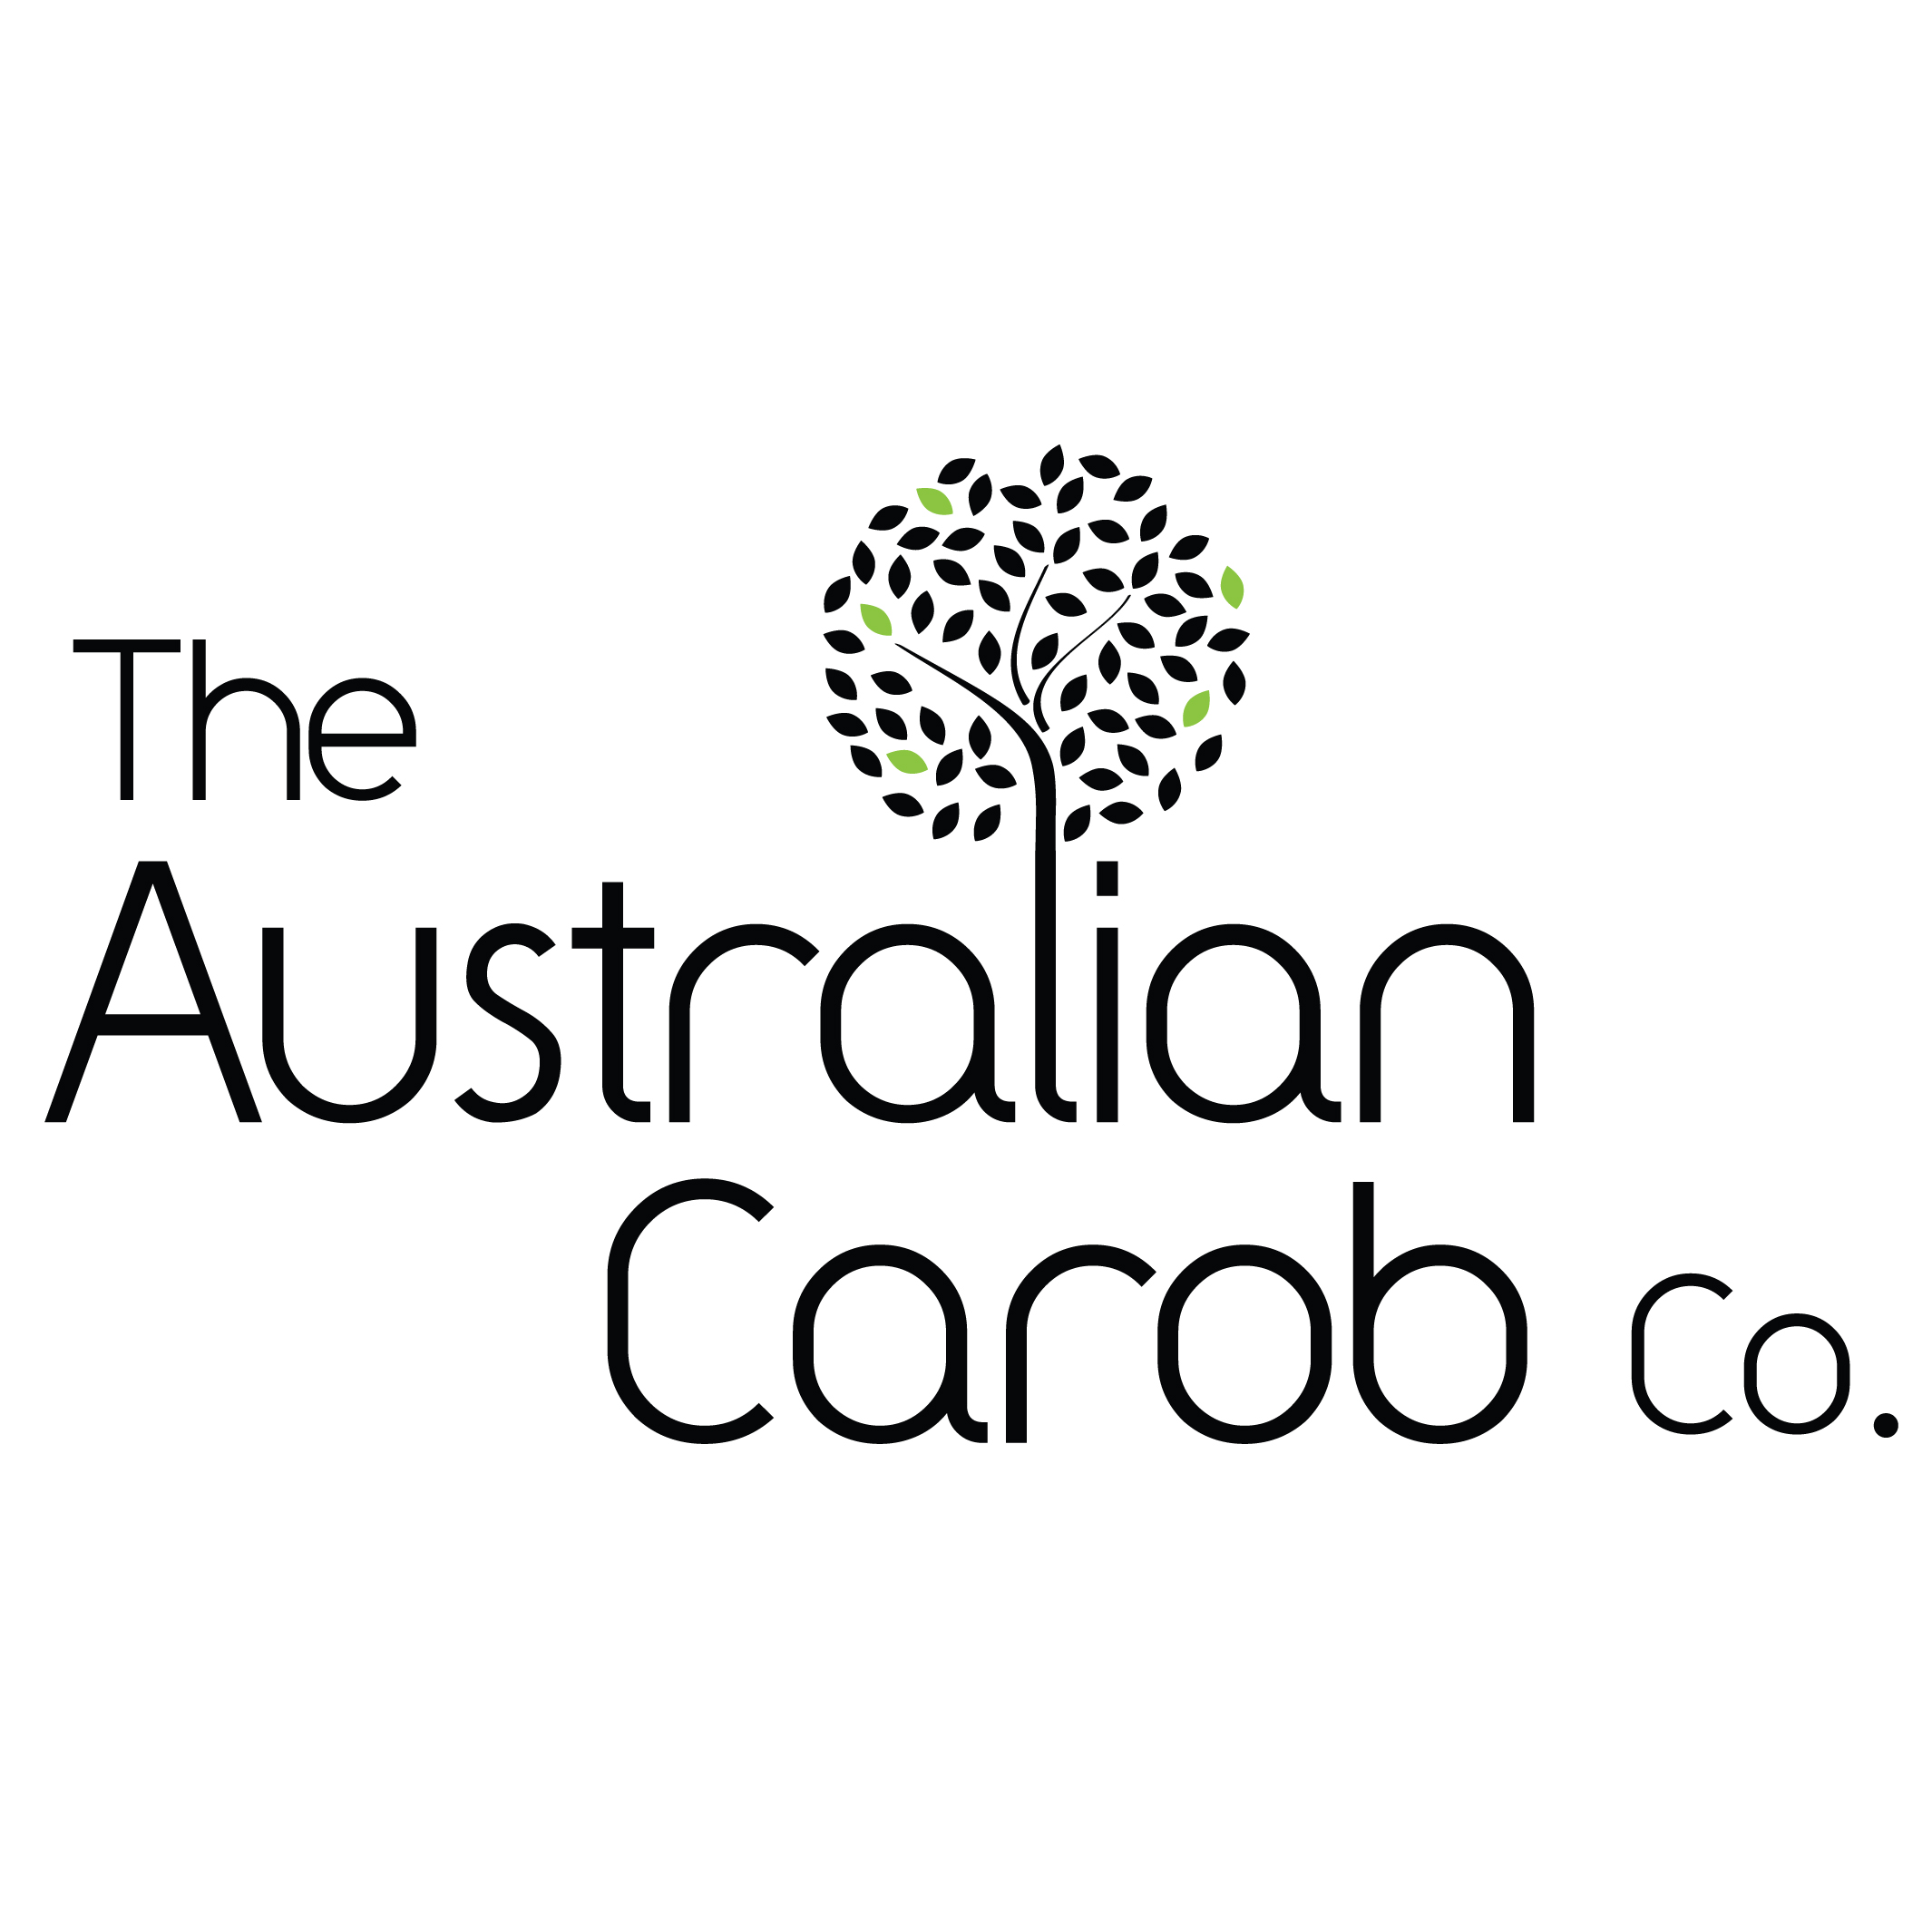 Australian Carobs | The Australian Carob Co